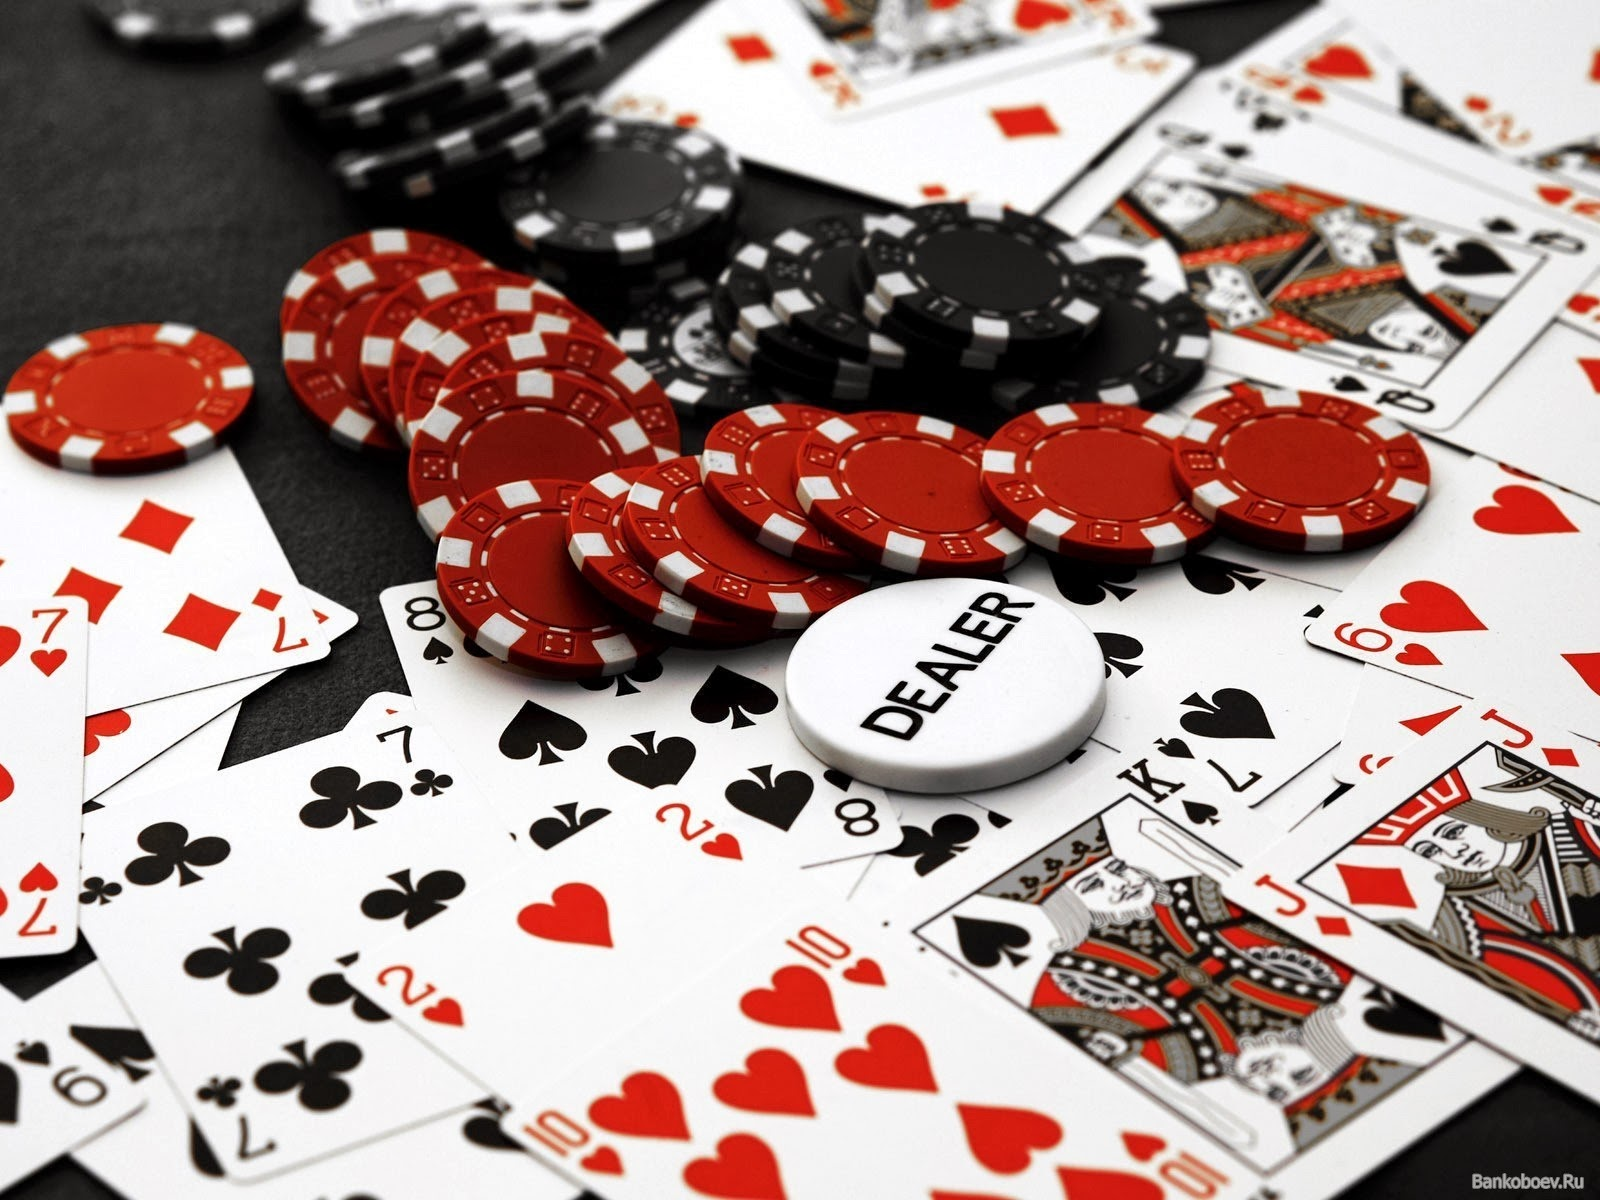 Find Out Right Website to Play Live Online Casino in Singapore